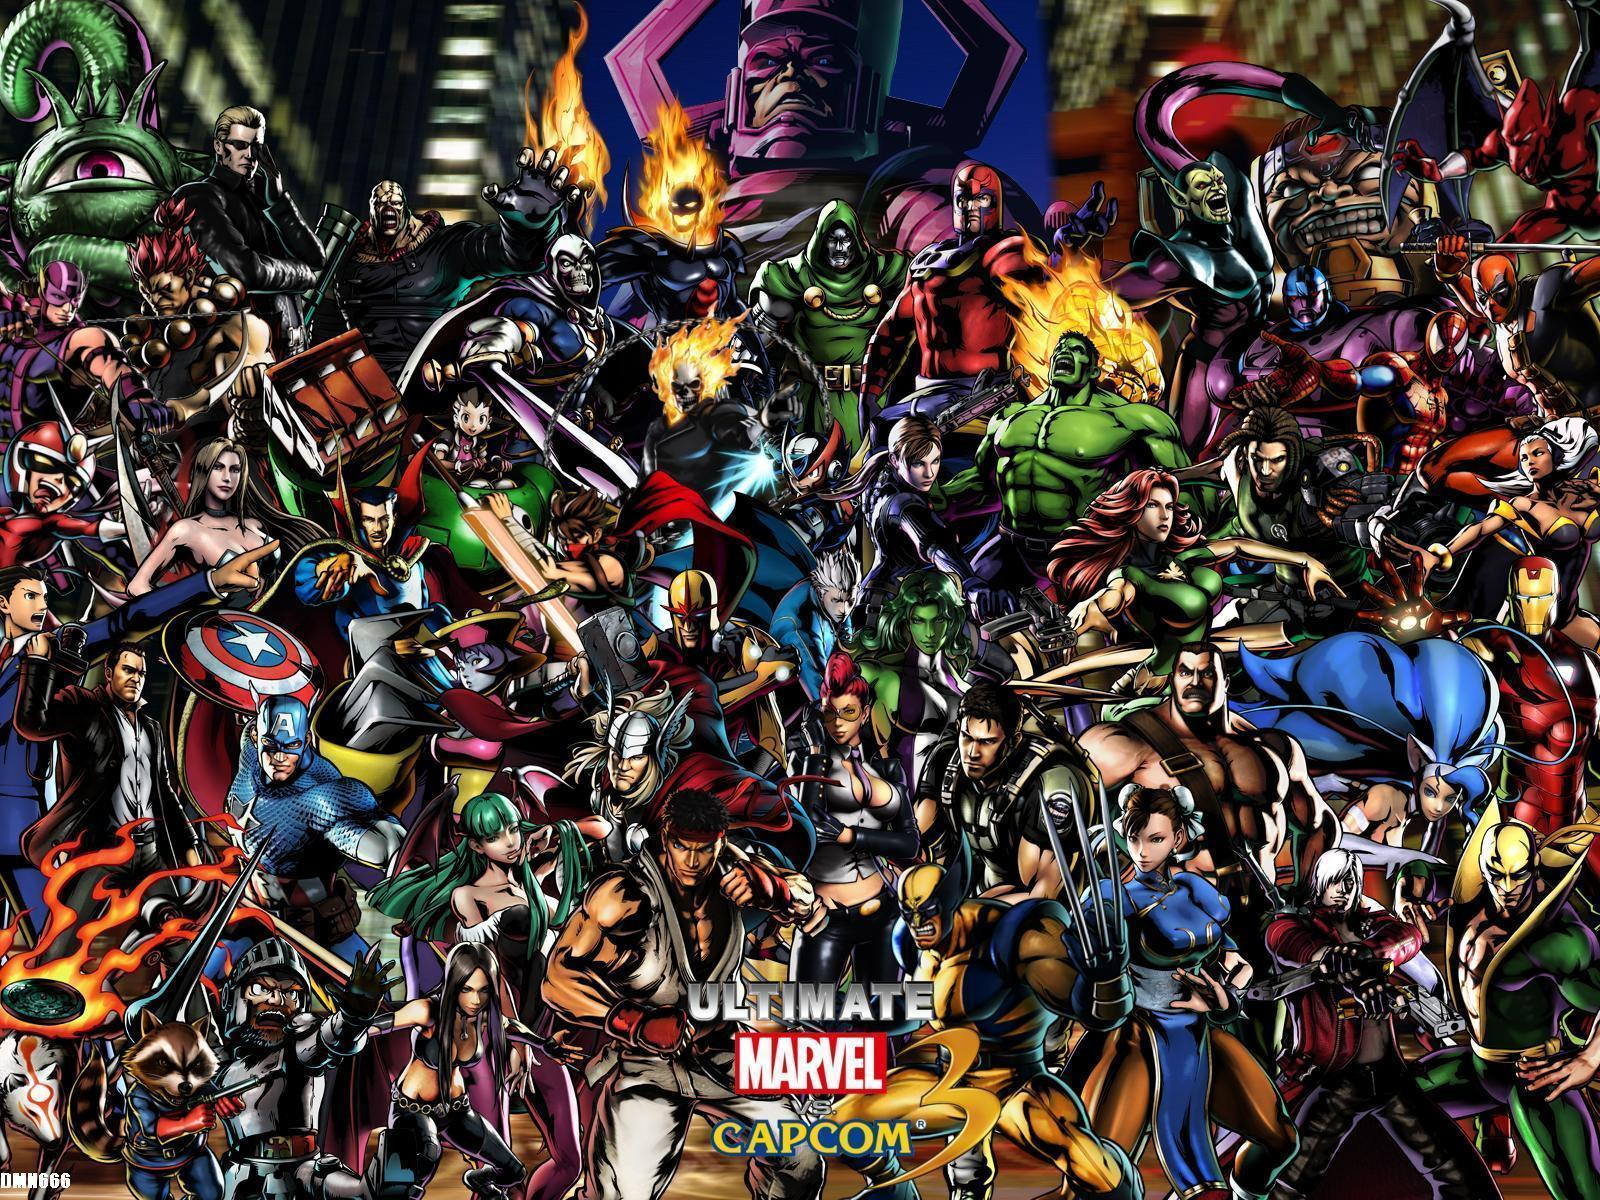 DeviantArt: More Like UMvC3 Ultimate Marvel Vs Capcom 3 Wallpapers